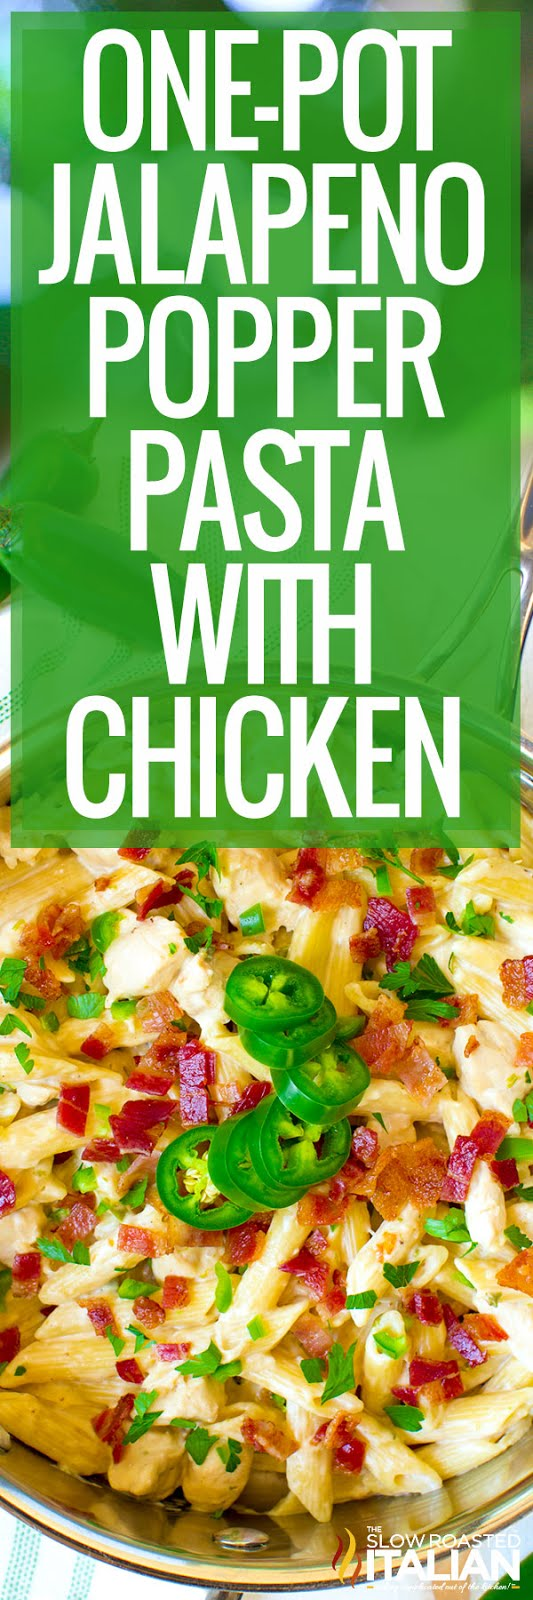 titled photo for Pinterest - Cheesy One Pot Jalapeno Popper Chicken Pasta